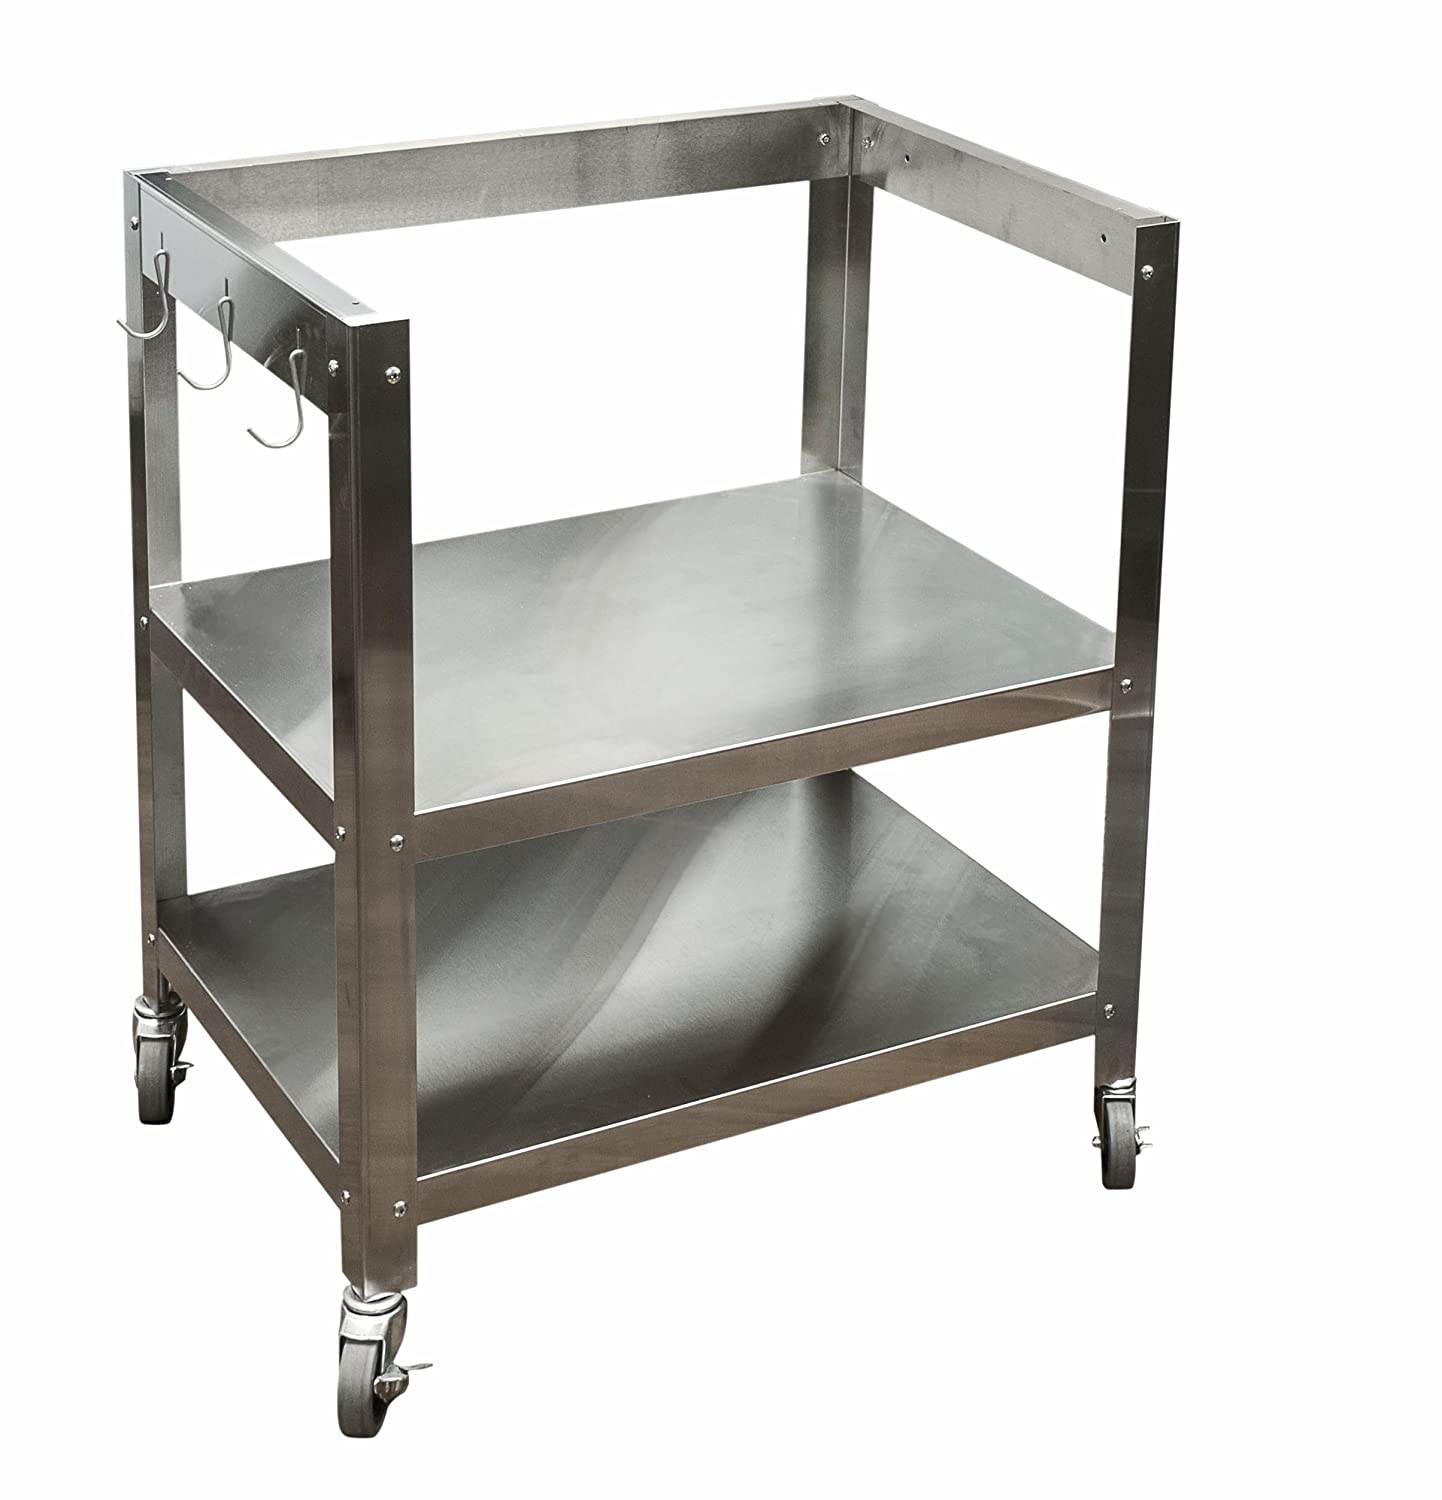 Amazon Danver Stainless Steel Kitchen Cart without Top 27